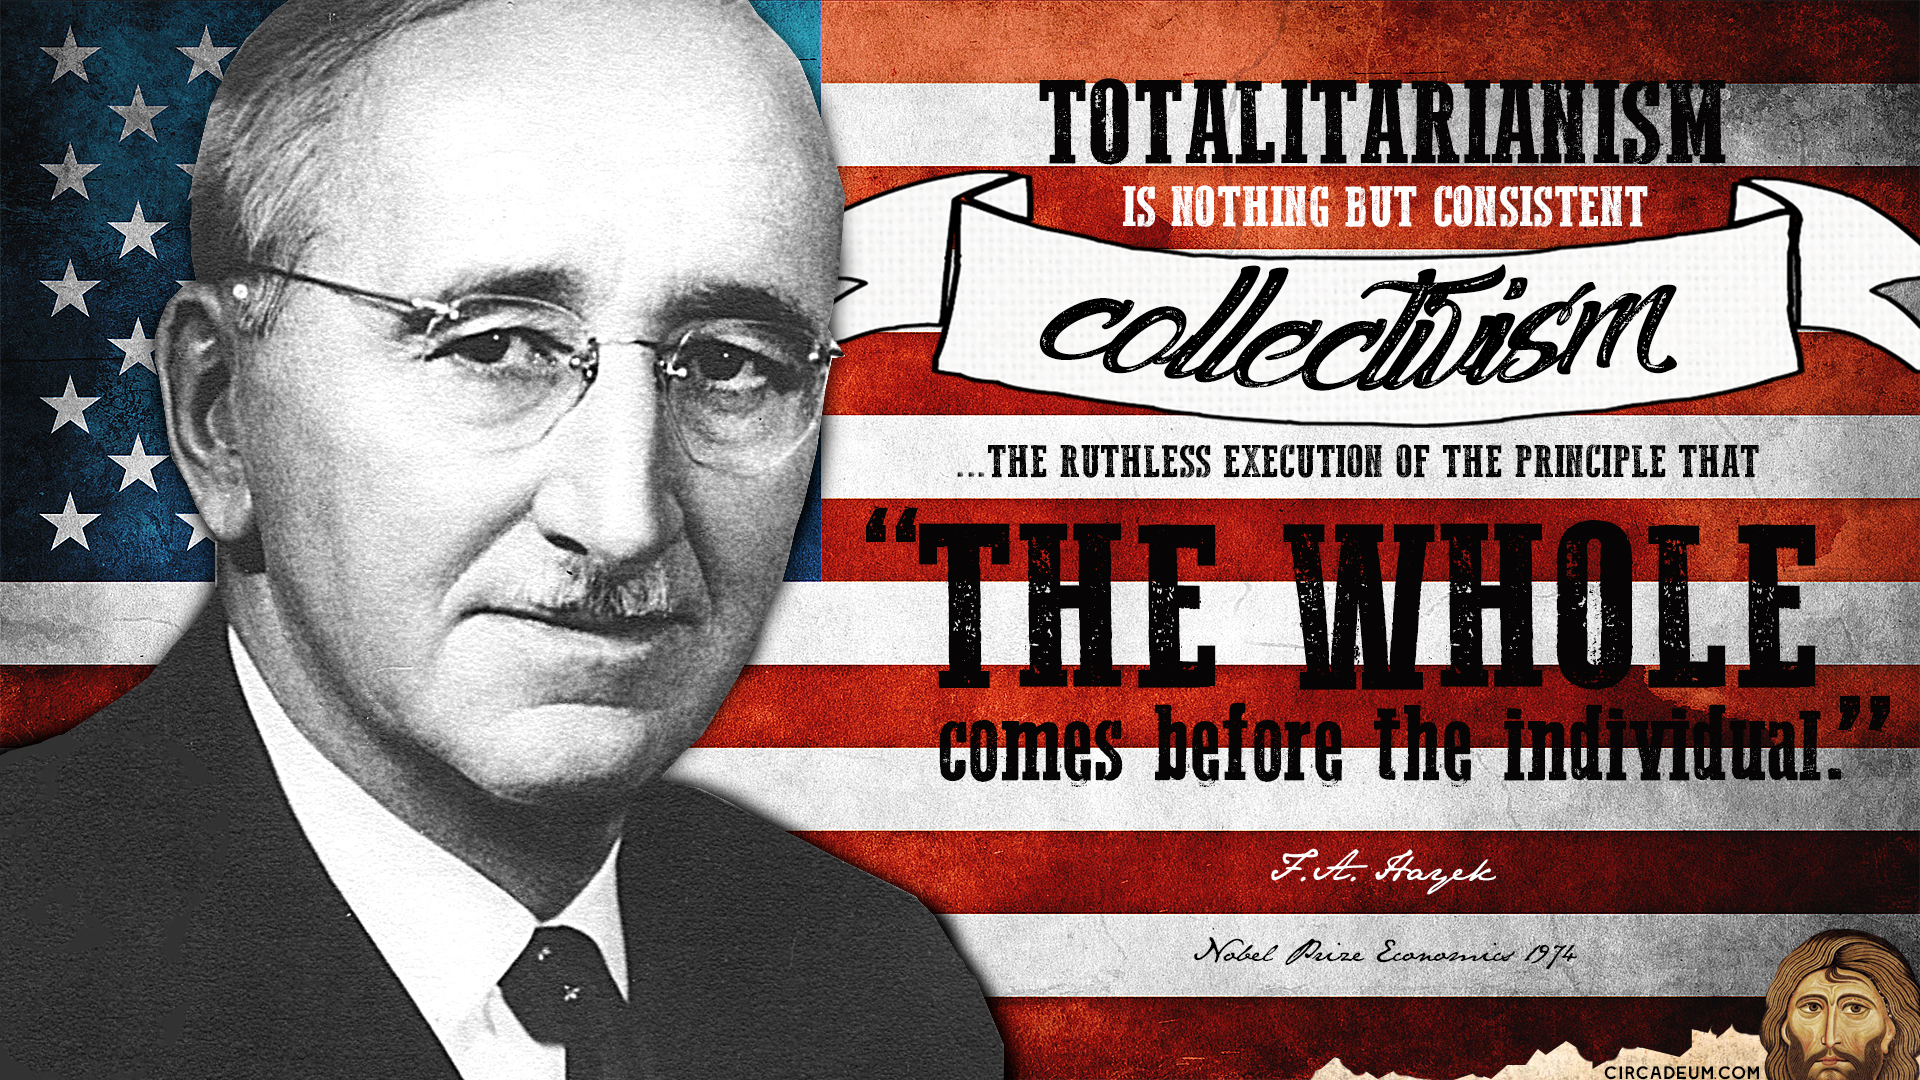 FA Hayek Friedrich August von Hayek quote totalitarianism collectivism